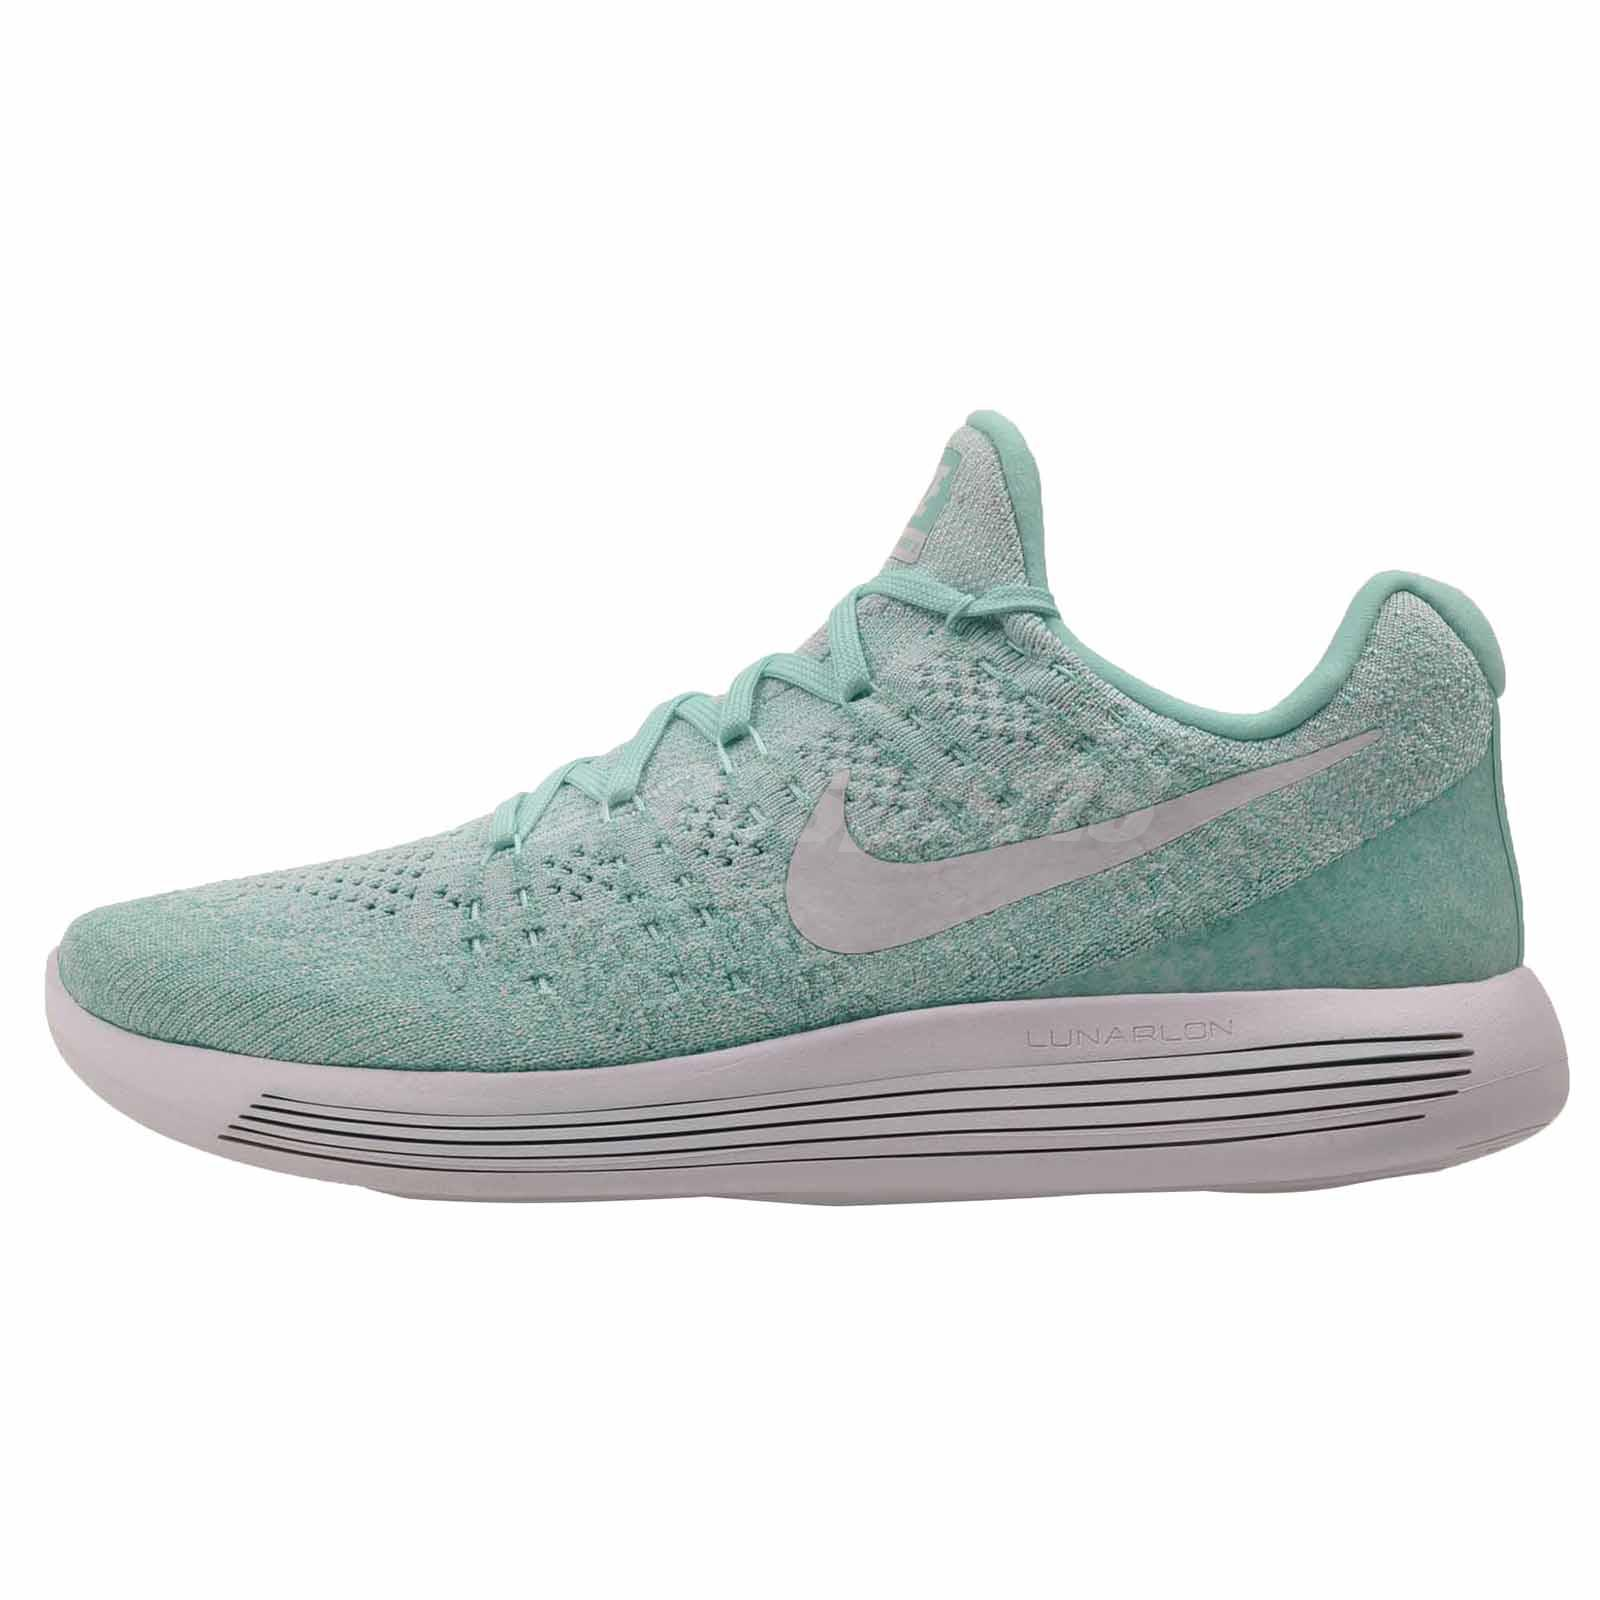 Nike Wmns Lunarepic Low Flyknit 2 Running Womens Shoes Turquoise